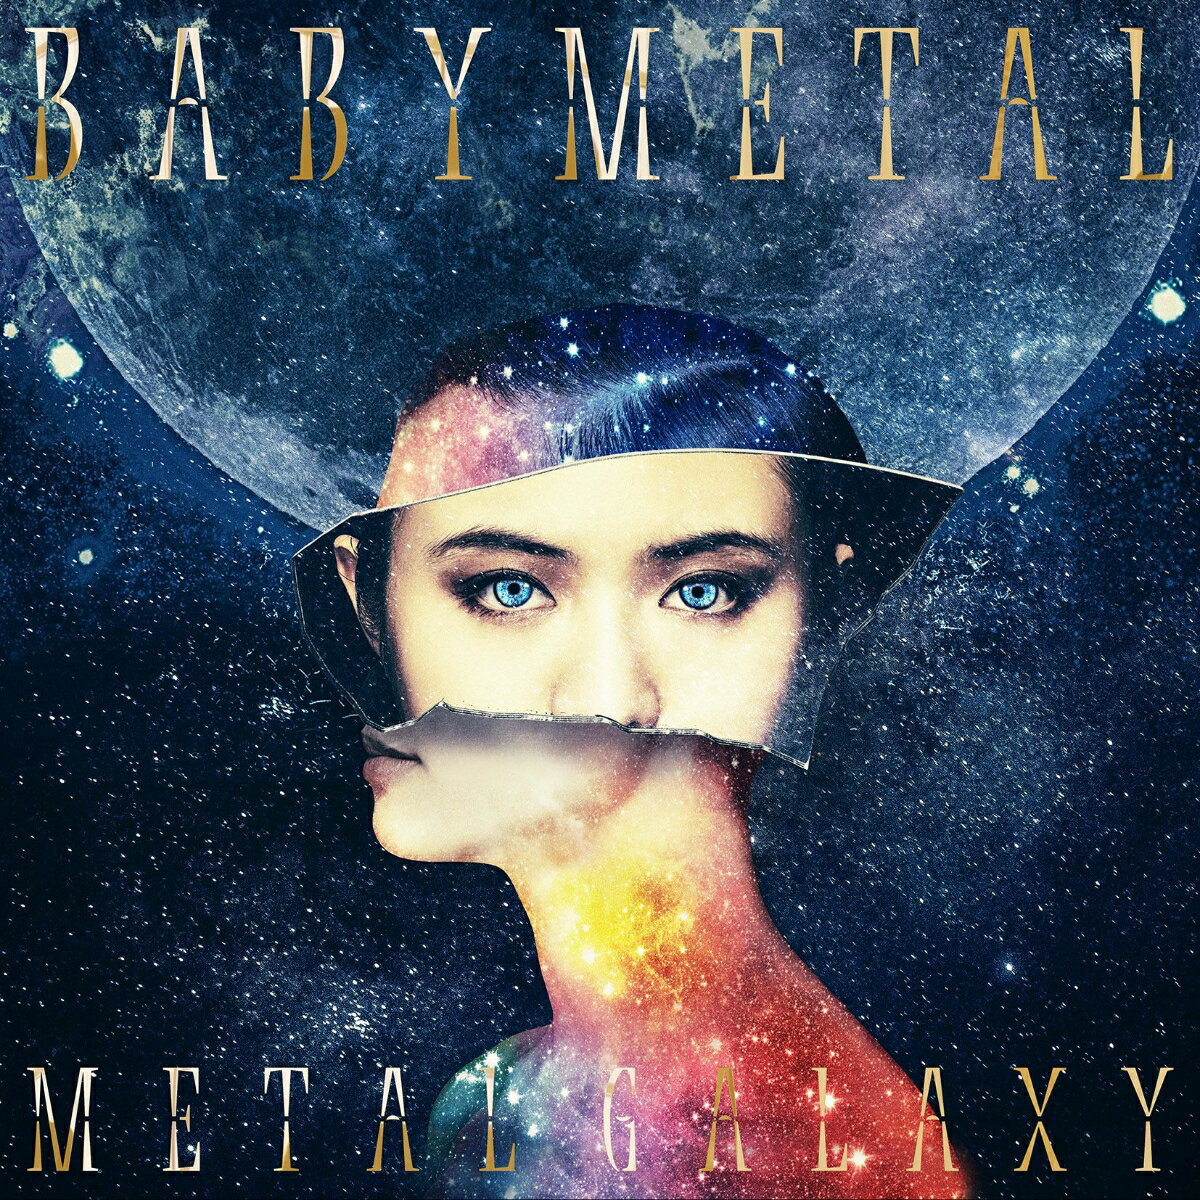 ロック・ポップス, その他 METAL GALAXY (MOON - Japan Complete Edition - 2CD) BABYMETAL